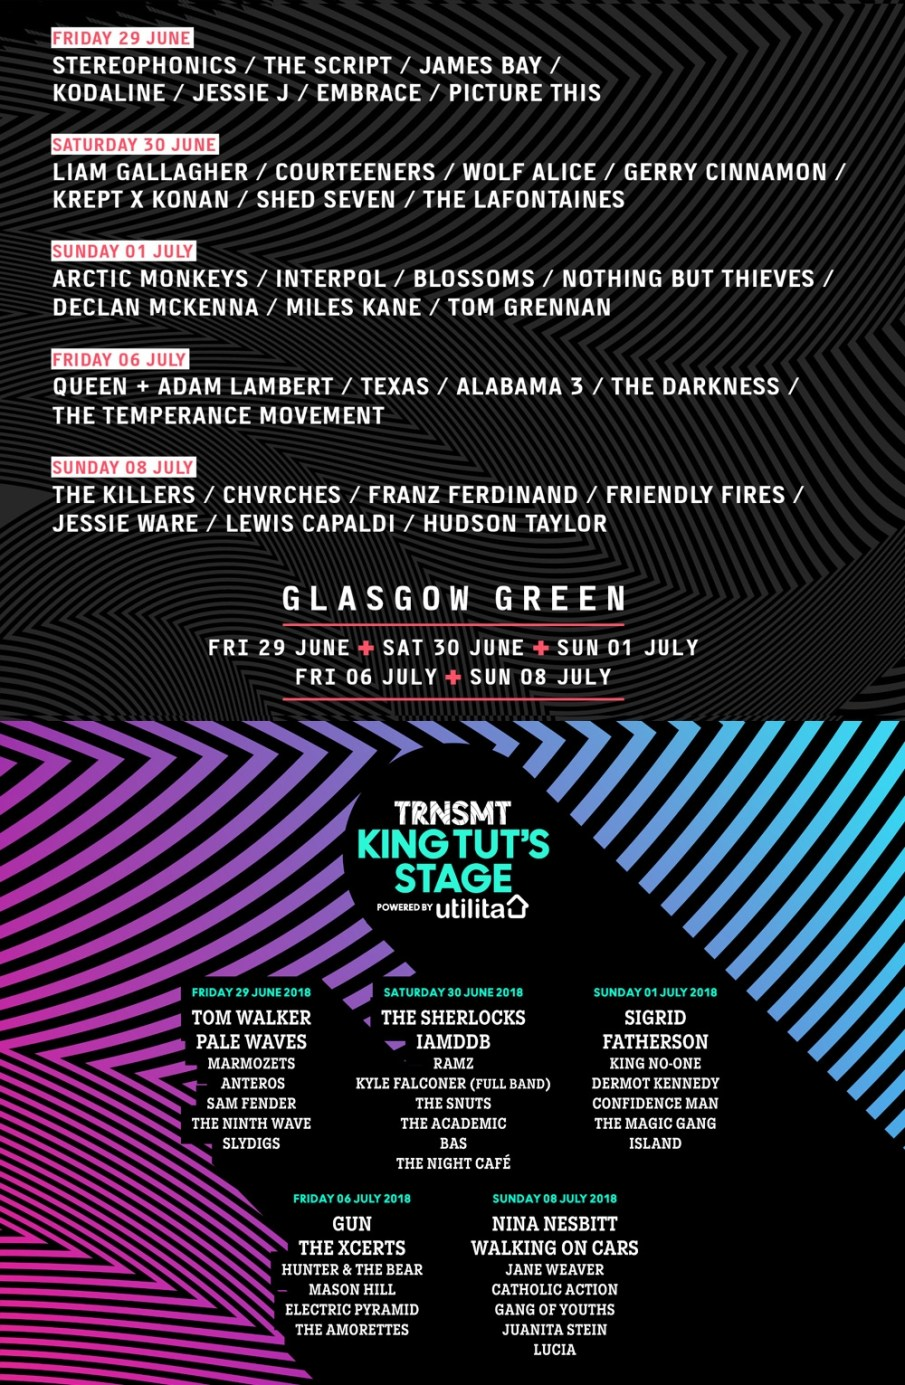 Gang of Youths in Glasgow on Sunday, July 8, 2018 – Deepest